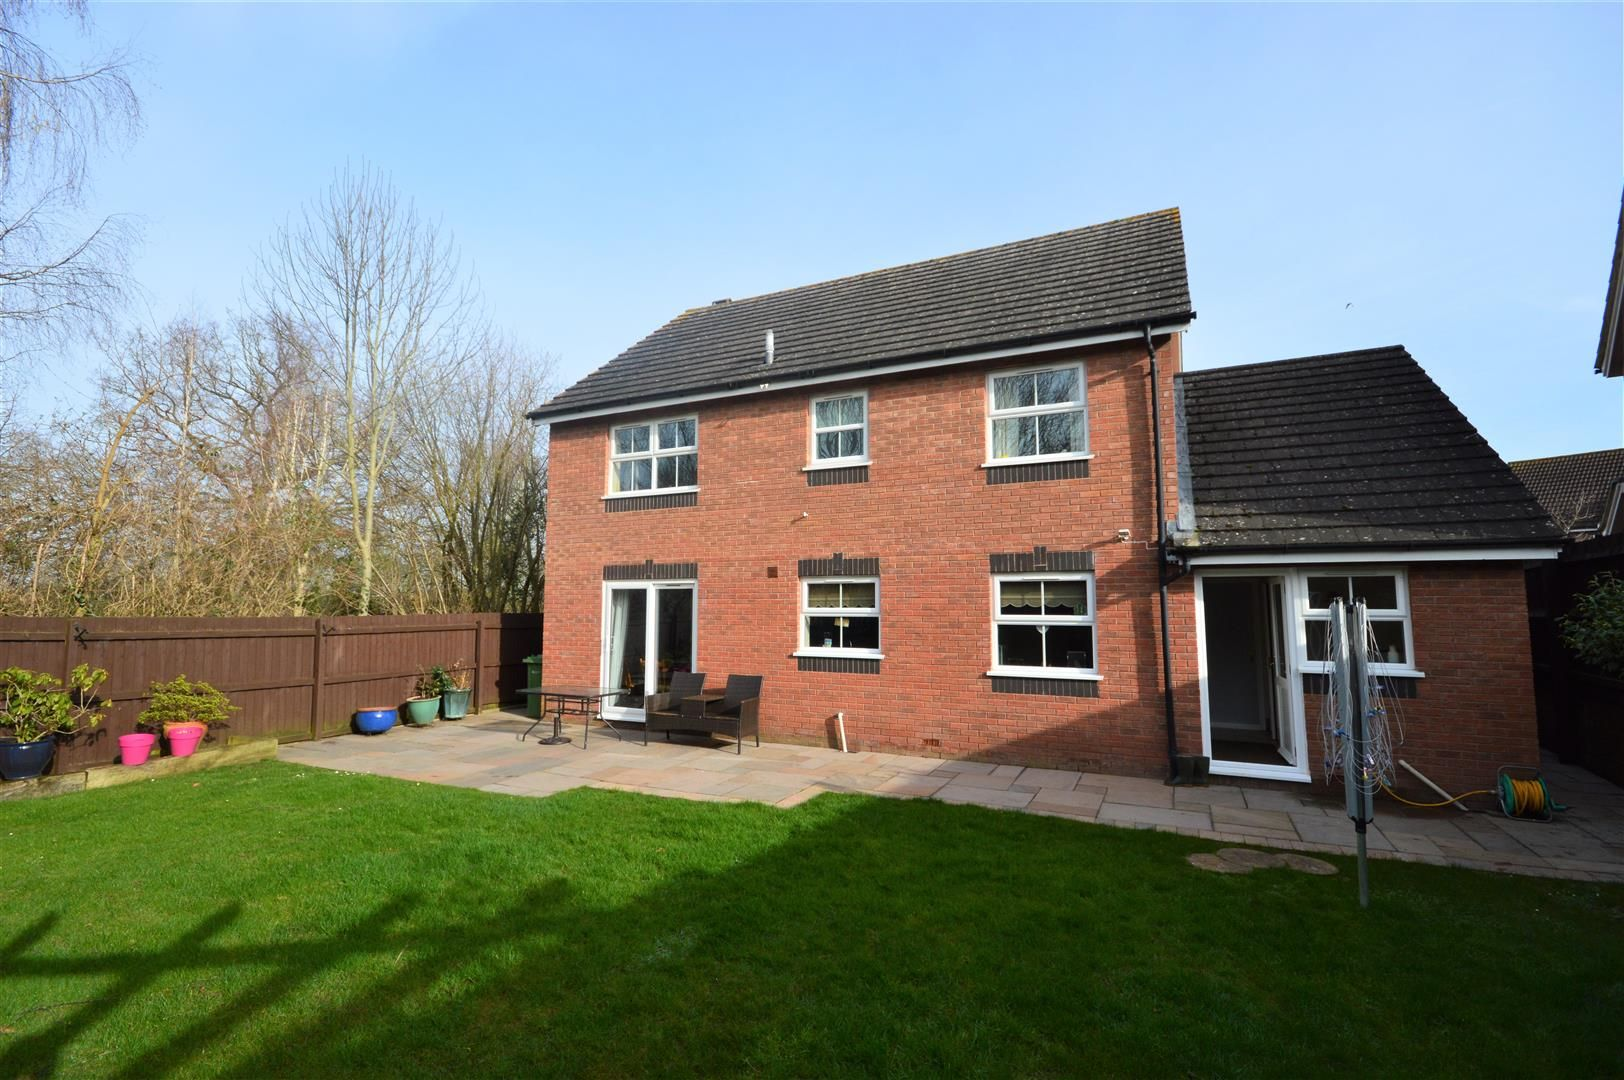 5 bed detached for sale in Leominster 16